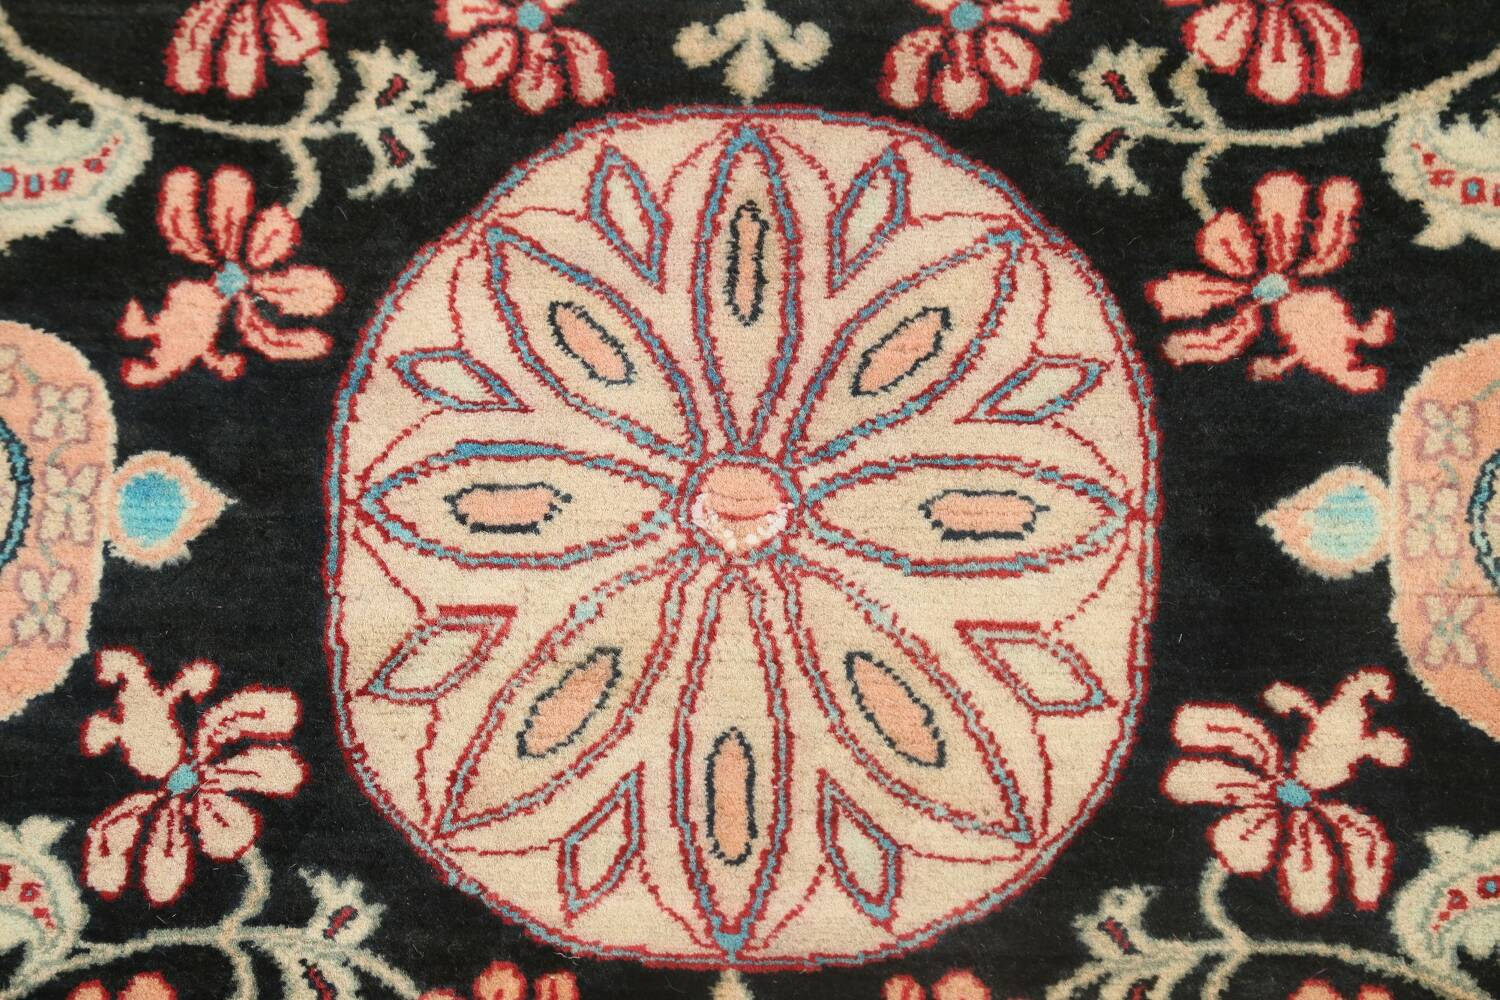 Vegetable Dye Floral Tabriz Oriental Area Rug 4x6 image 8